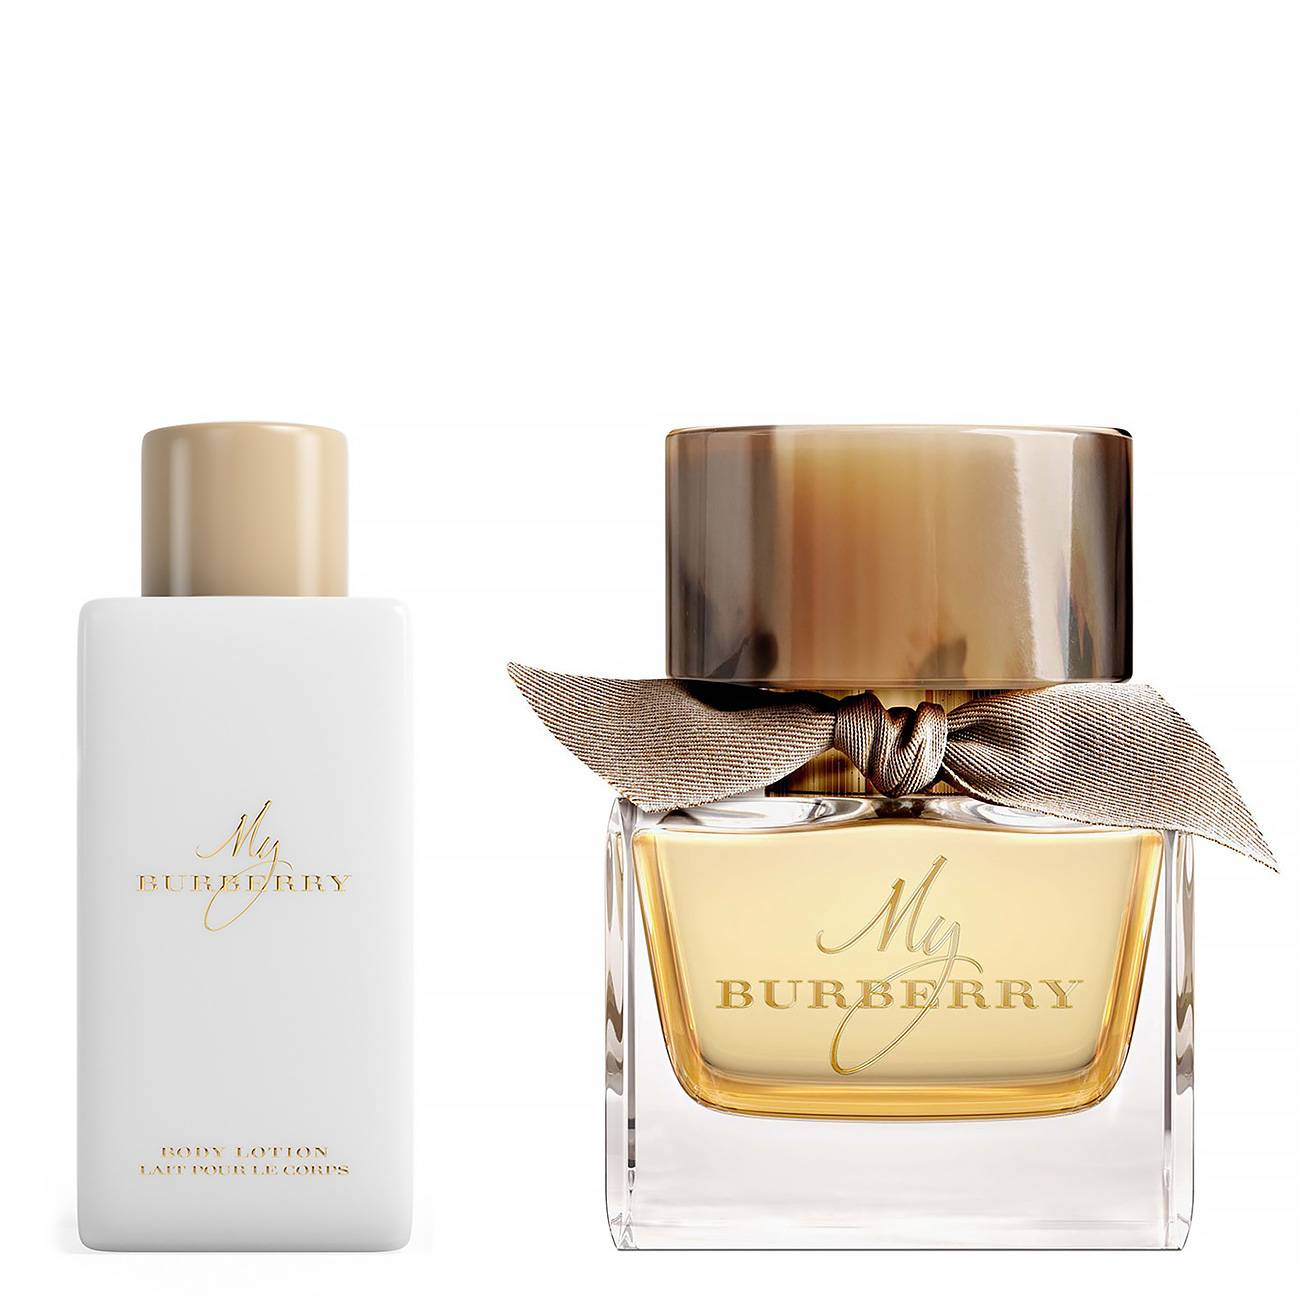 MY BURBERRY SET 125ml imagine produs